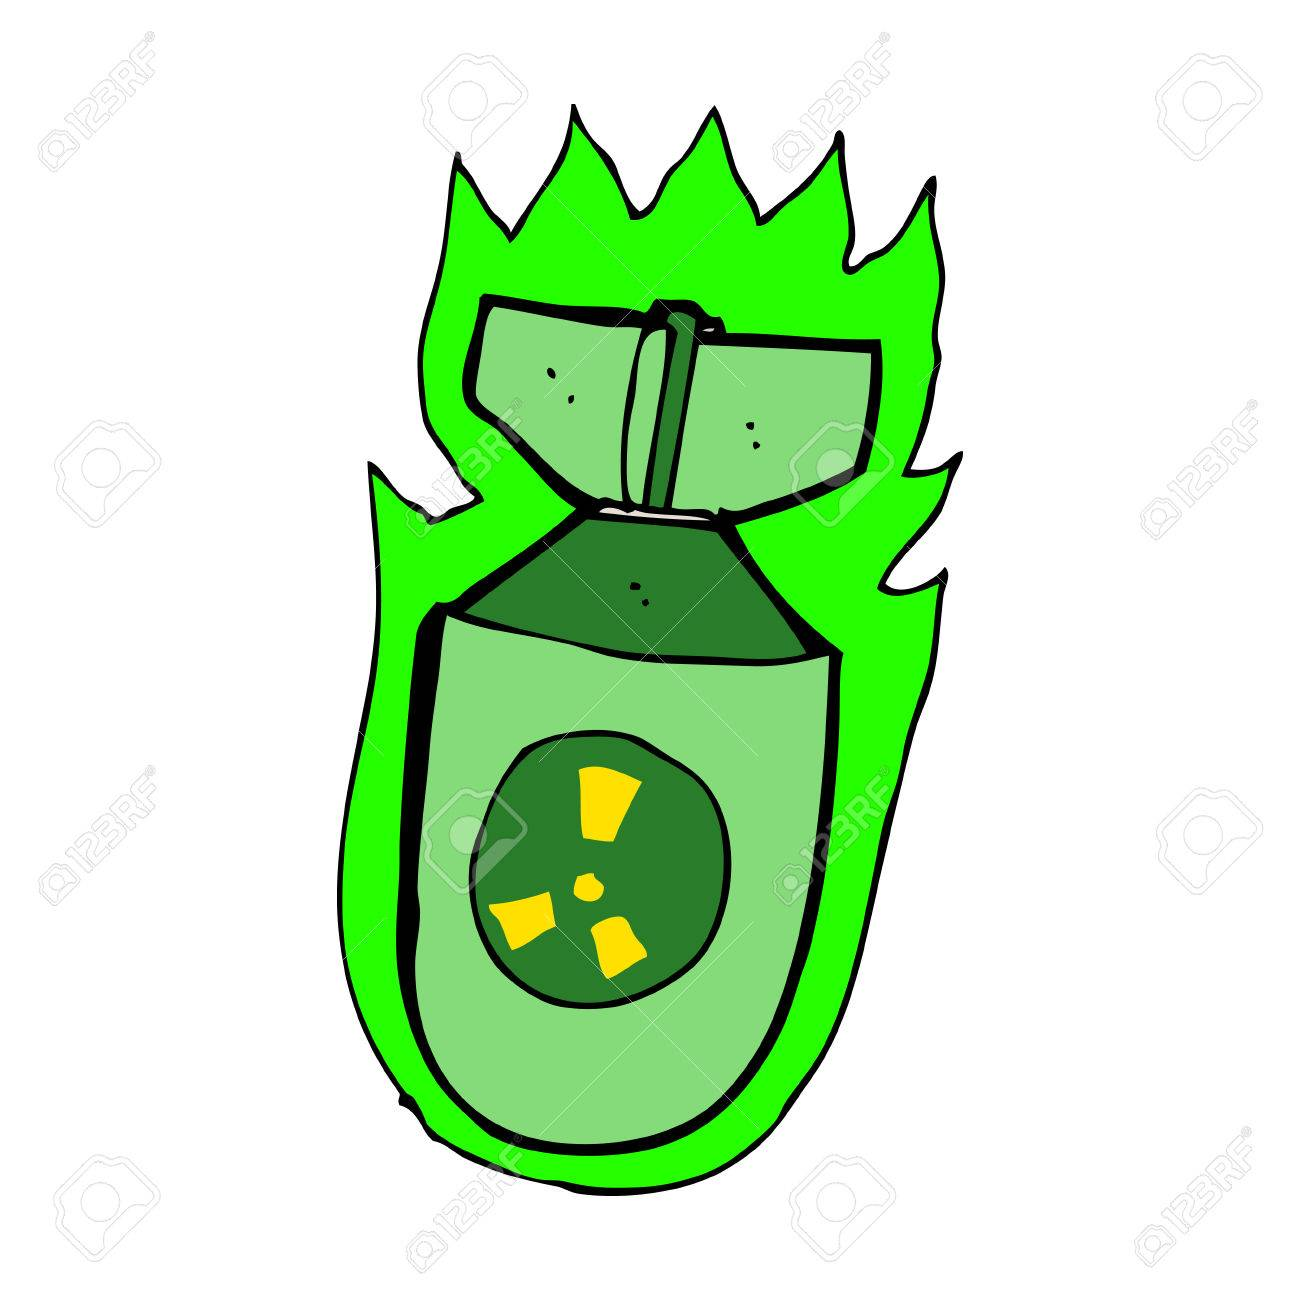 Cartoon Atomic Bomb Royalty Free Cliparts, Vectors, And Stock ...